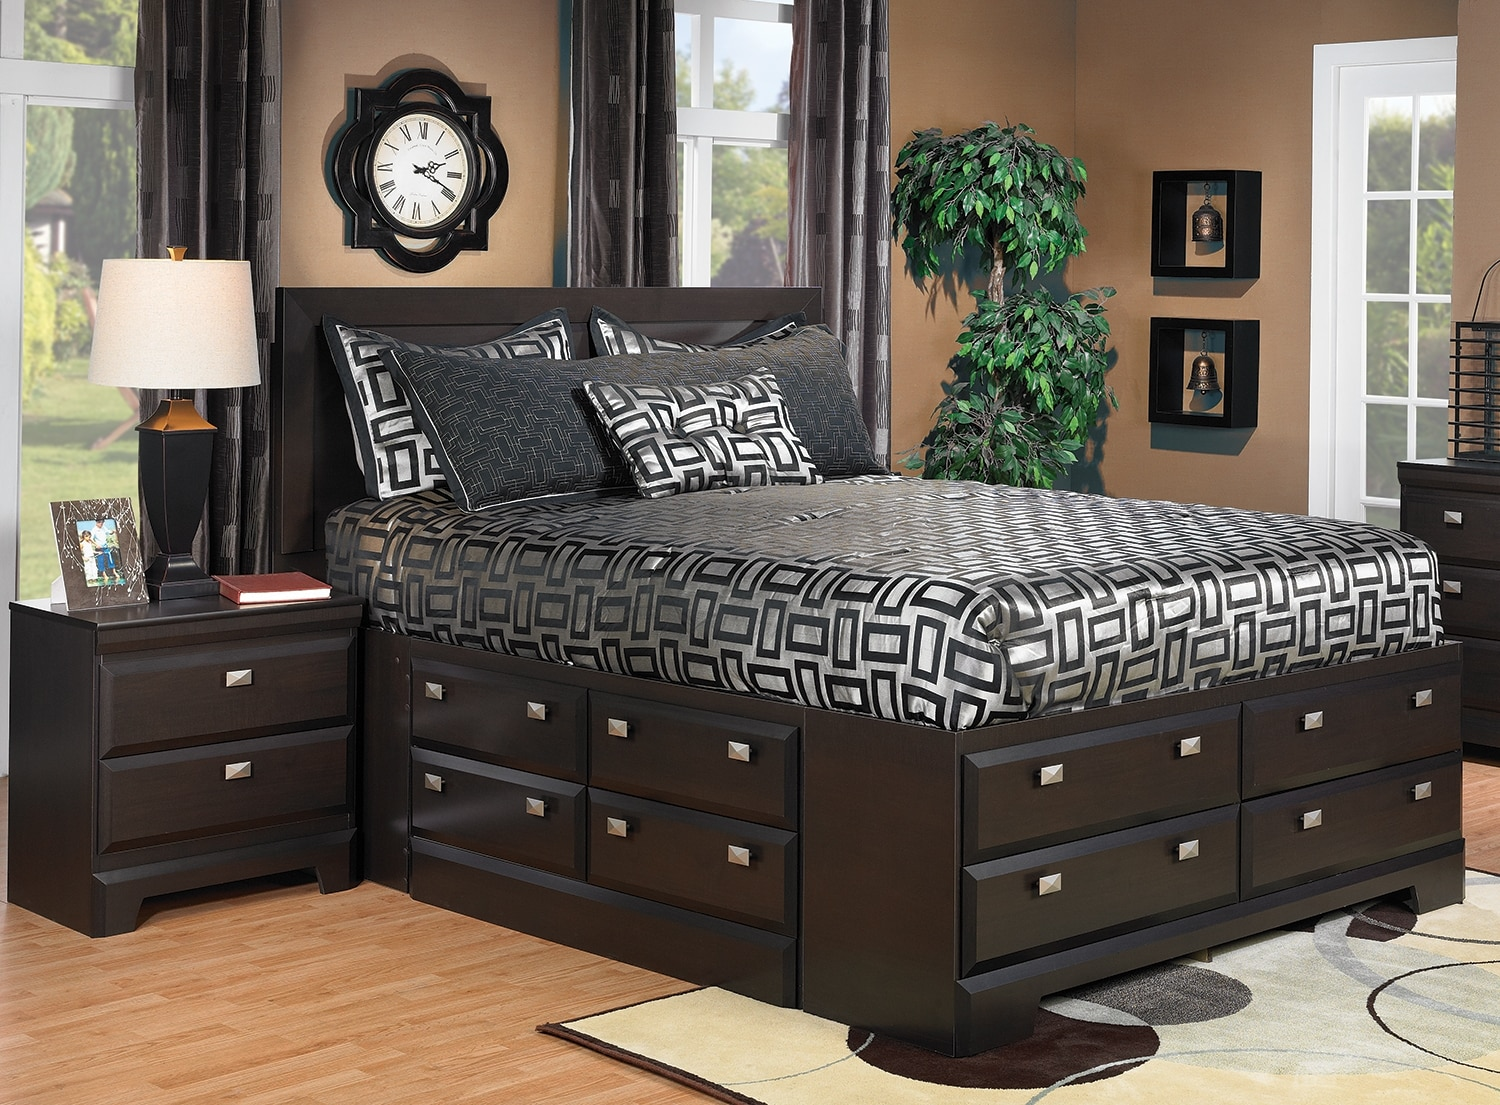 Bedroom Furniture - Yorkdale Queen Storage Bed with Nightstand Package